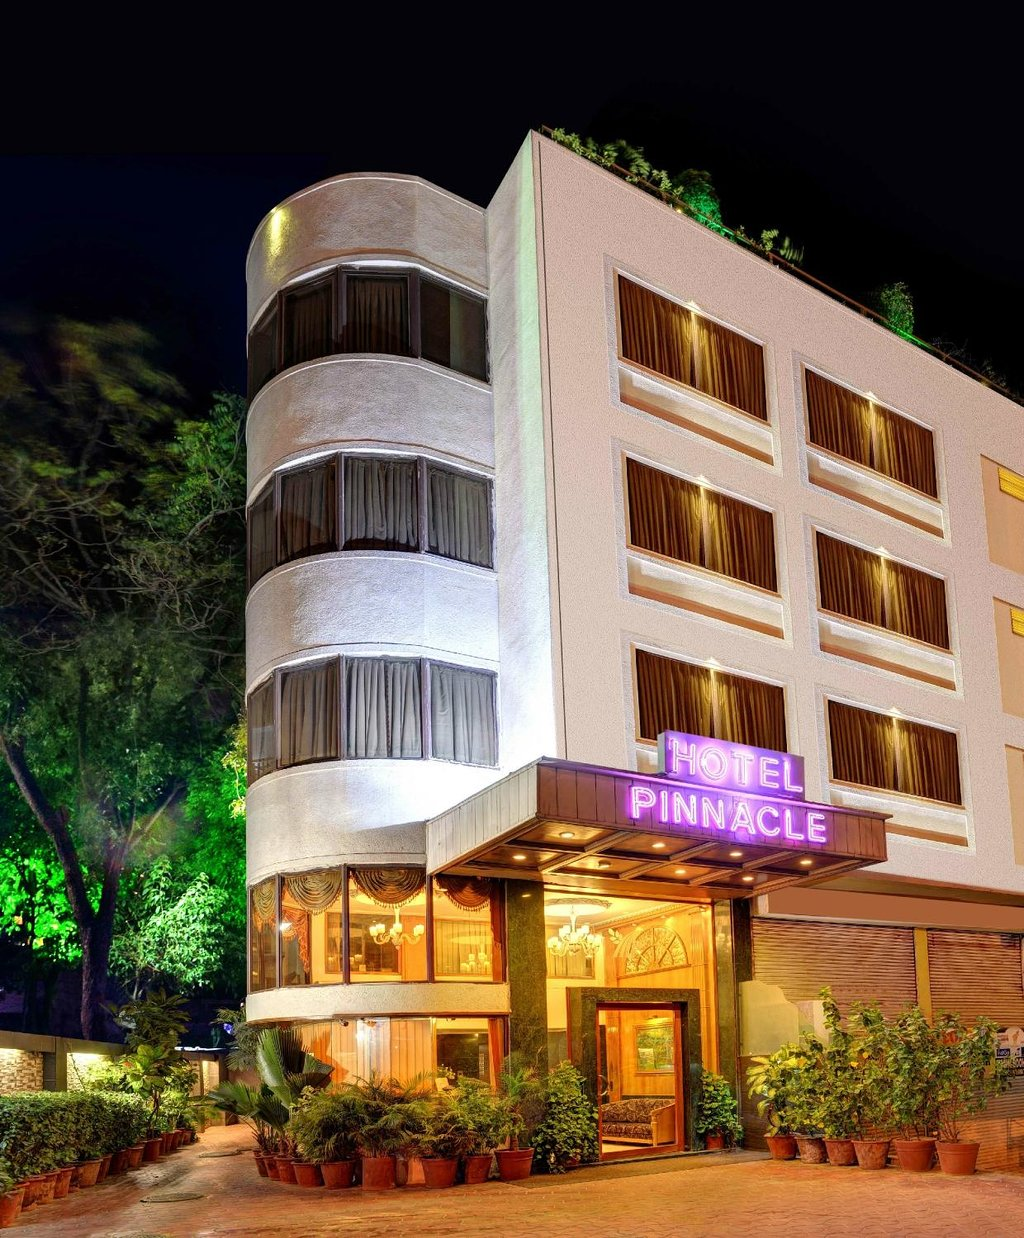 Pinnacle Hotel